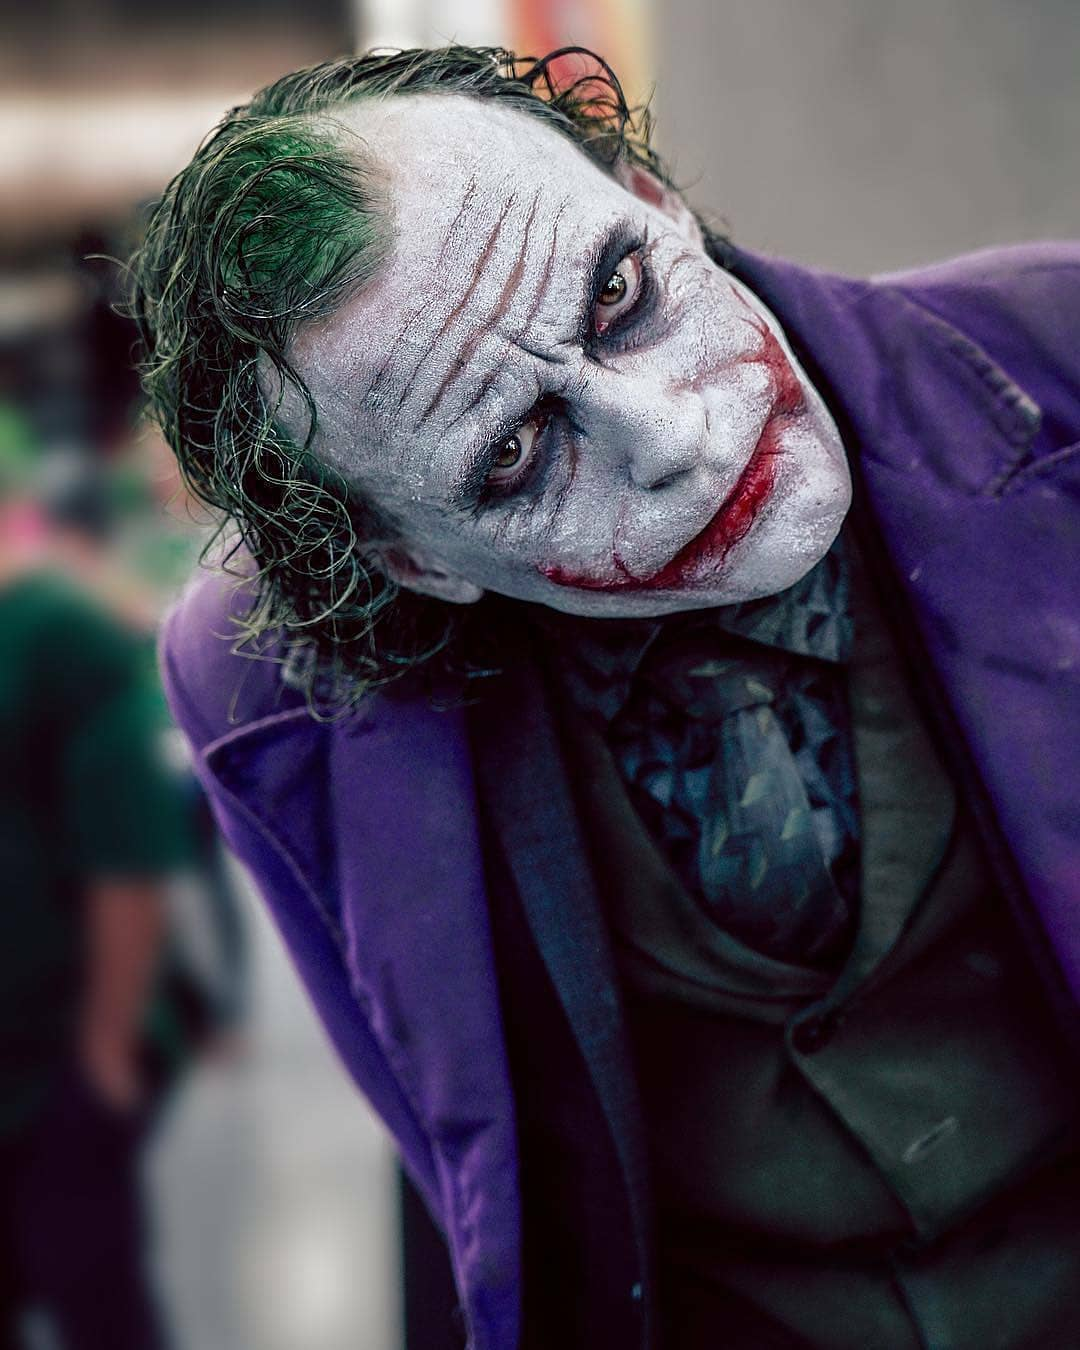 joker cosplay by agentsofkhaos photo by thomasdphotographs_cosplay